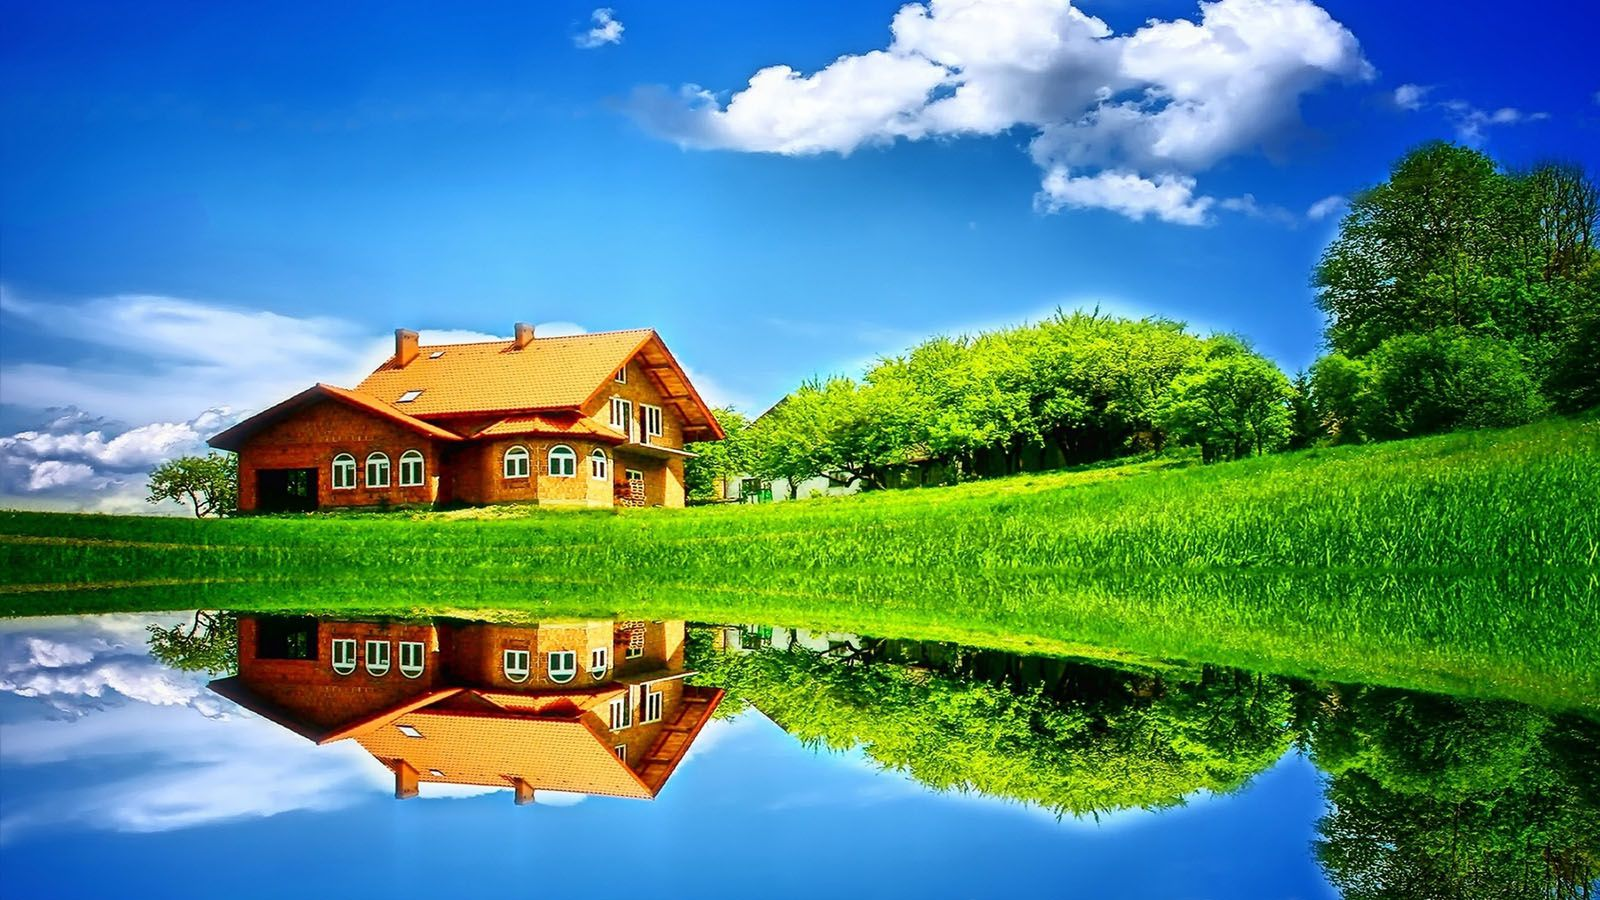 My sweet home amazing Sweet Home Home wallpaper Beautiful 1600x900